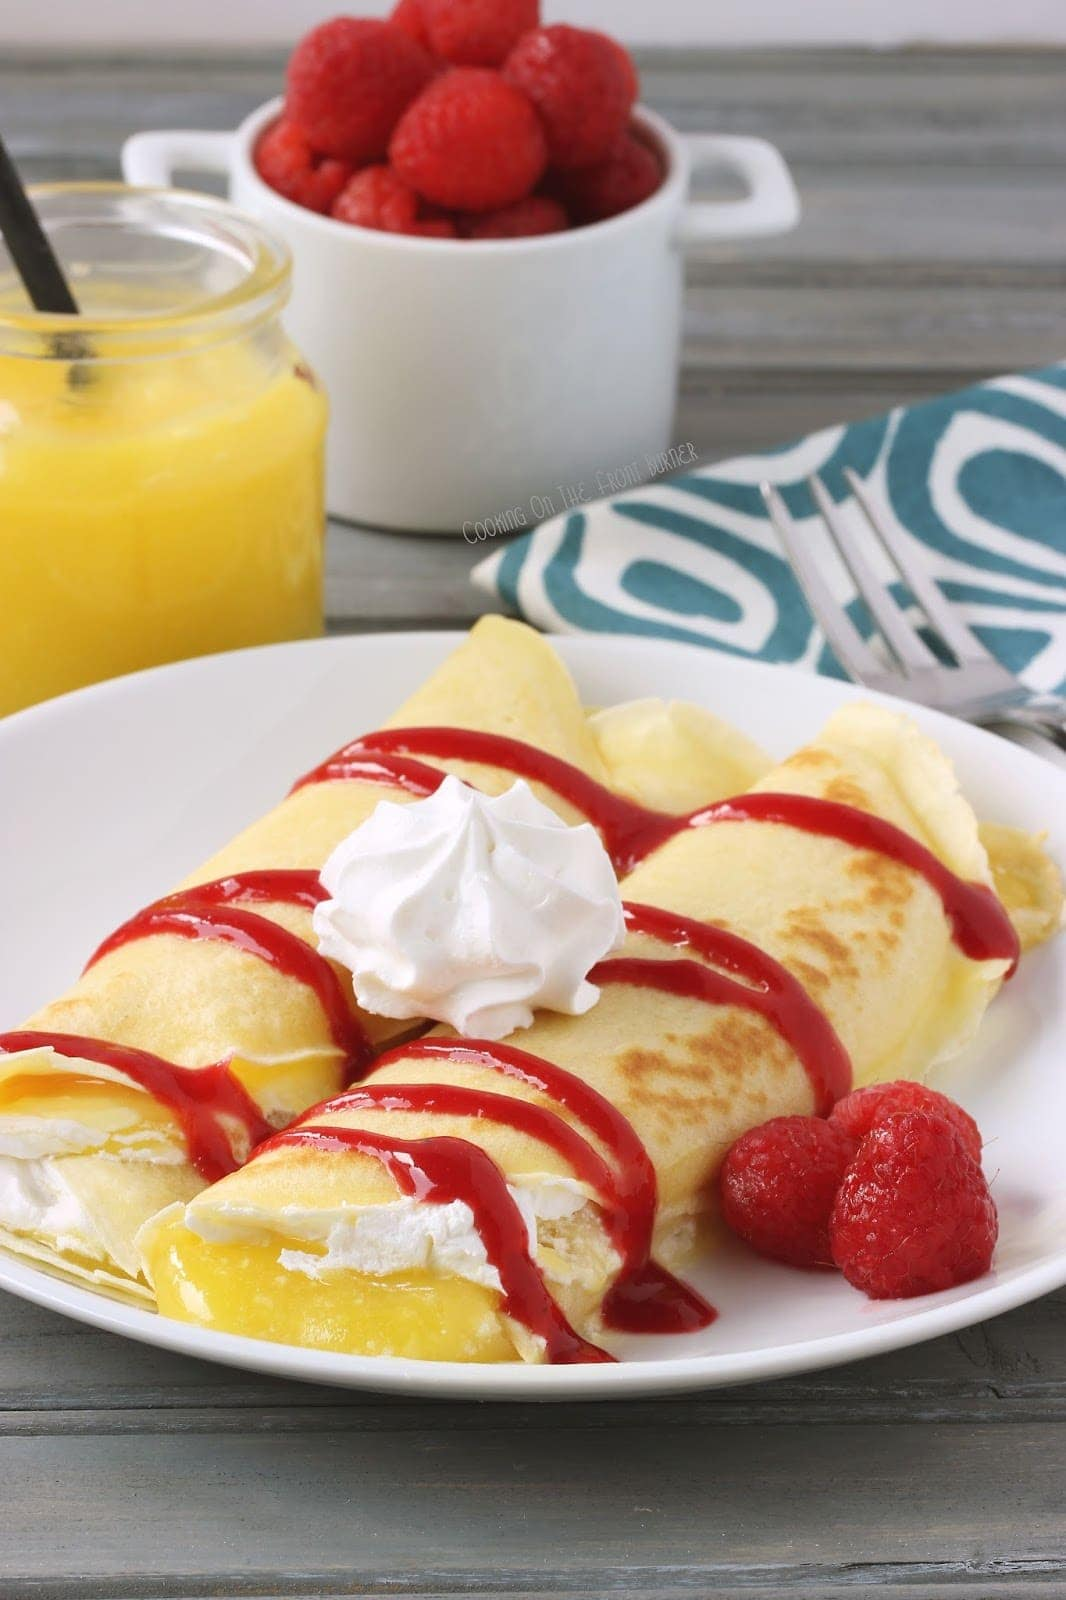 Lemon and Raspberry Crepes | Cooking on the Front Burner #crepes #lemons